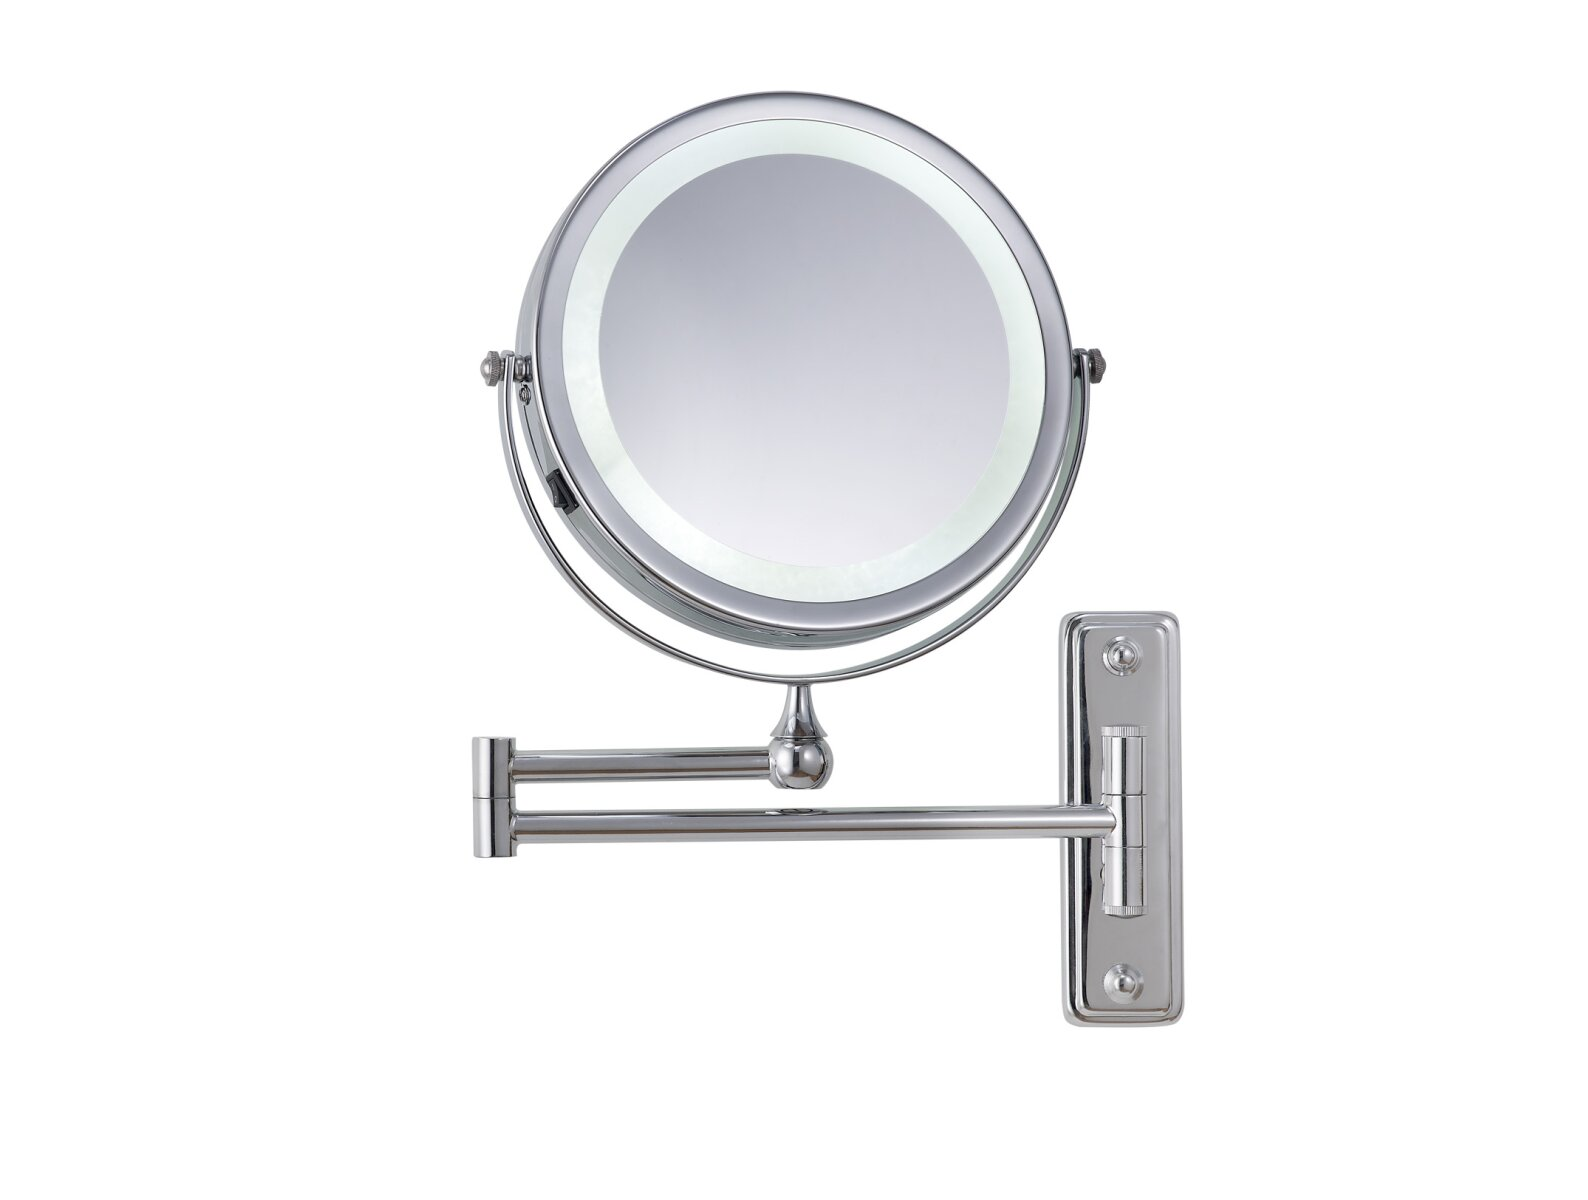 Illuminated wall mounted cosmetic shaving mirror corby for Wall mounted mirror